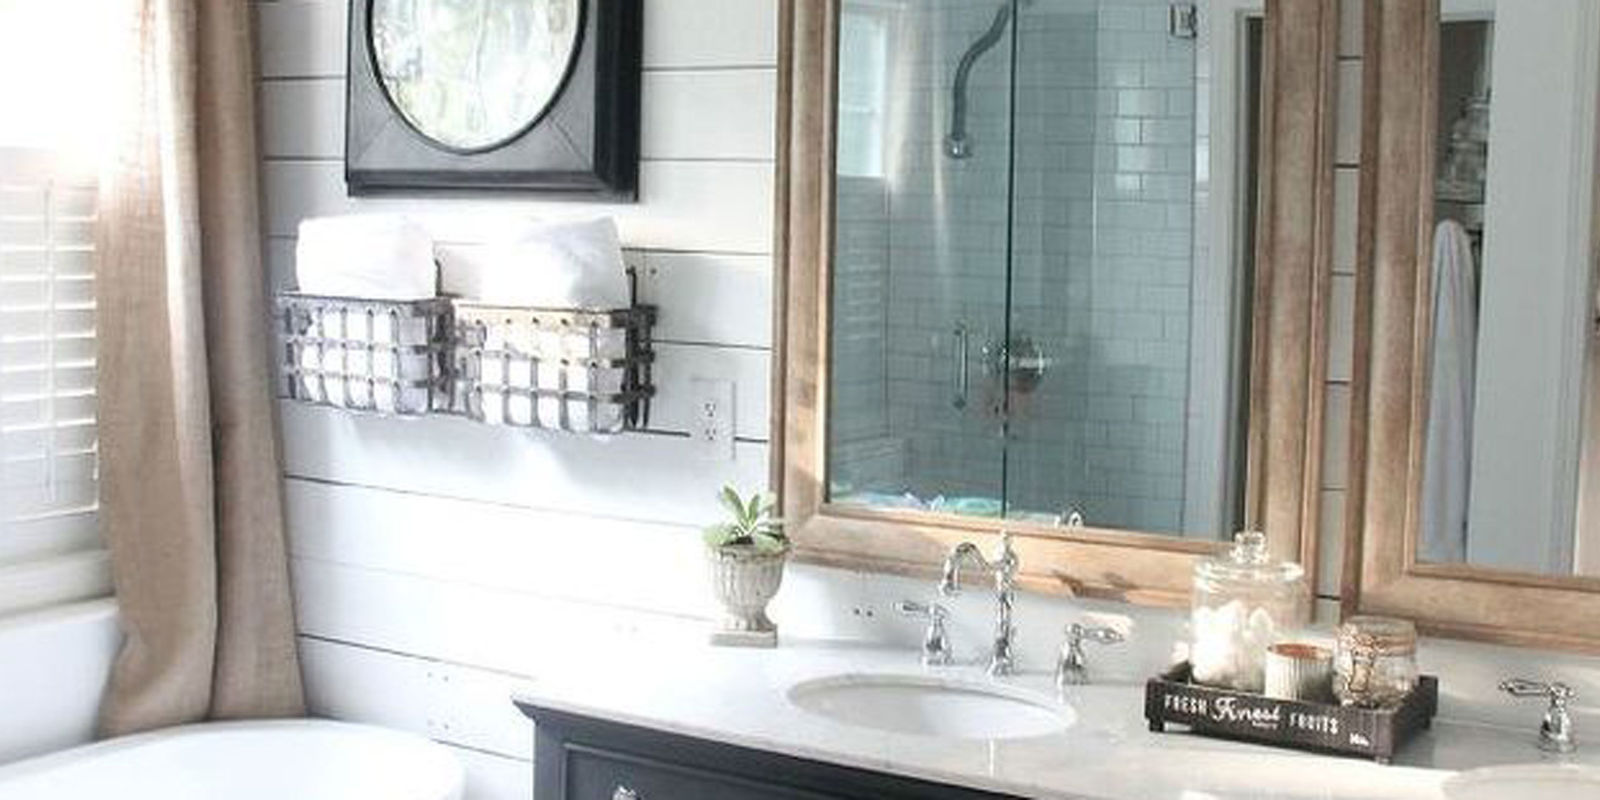 Farmhouse Bathroom Makeover - Rustic Bathroom Remodel on Rustic Farmhouse Bathroom  id=71670